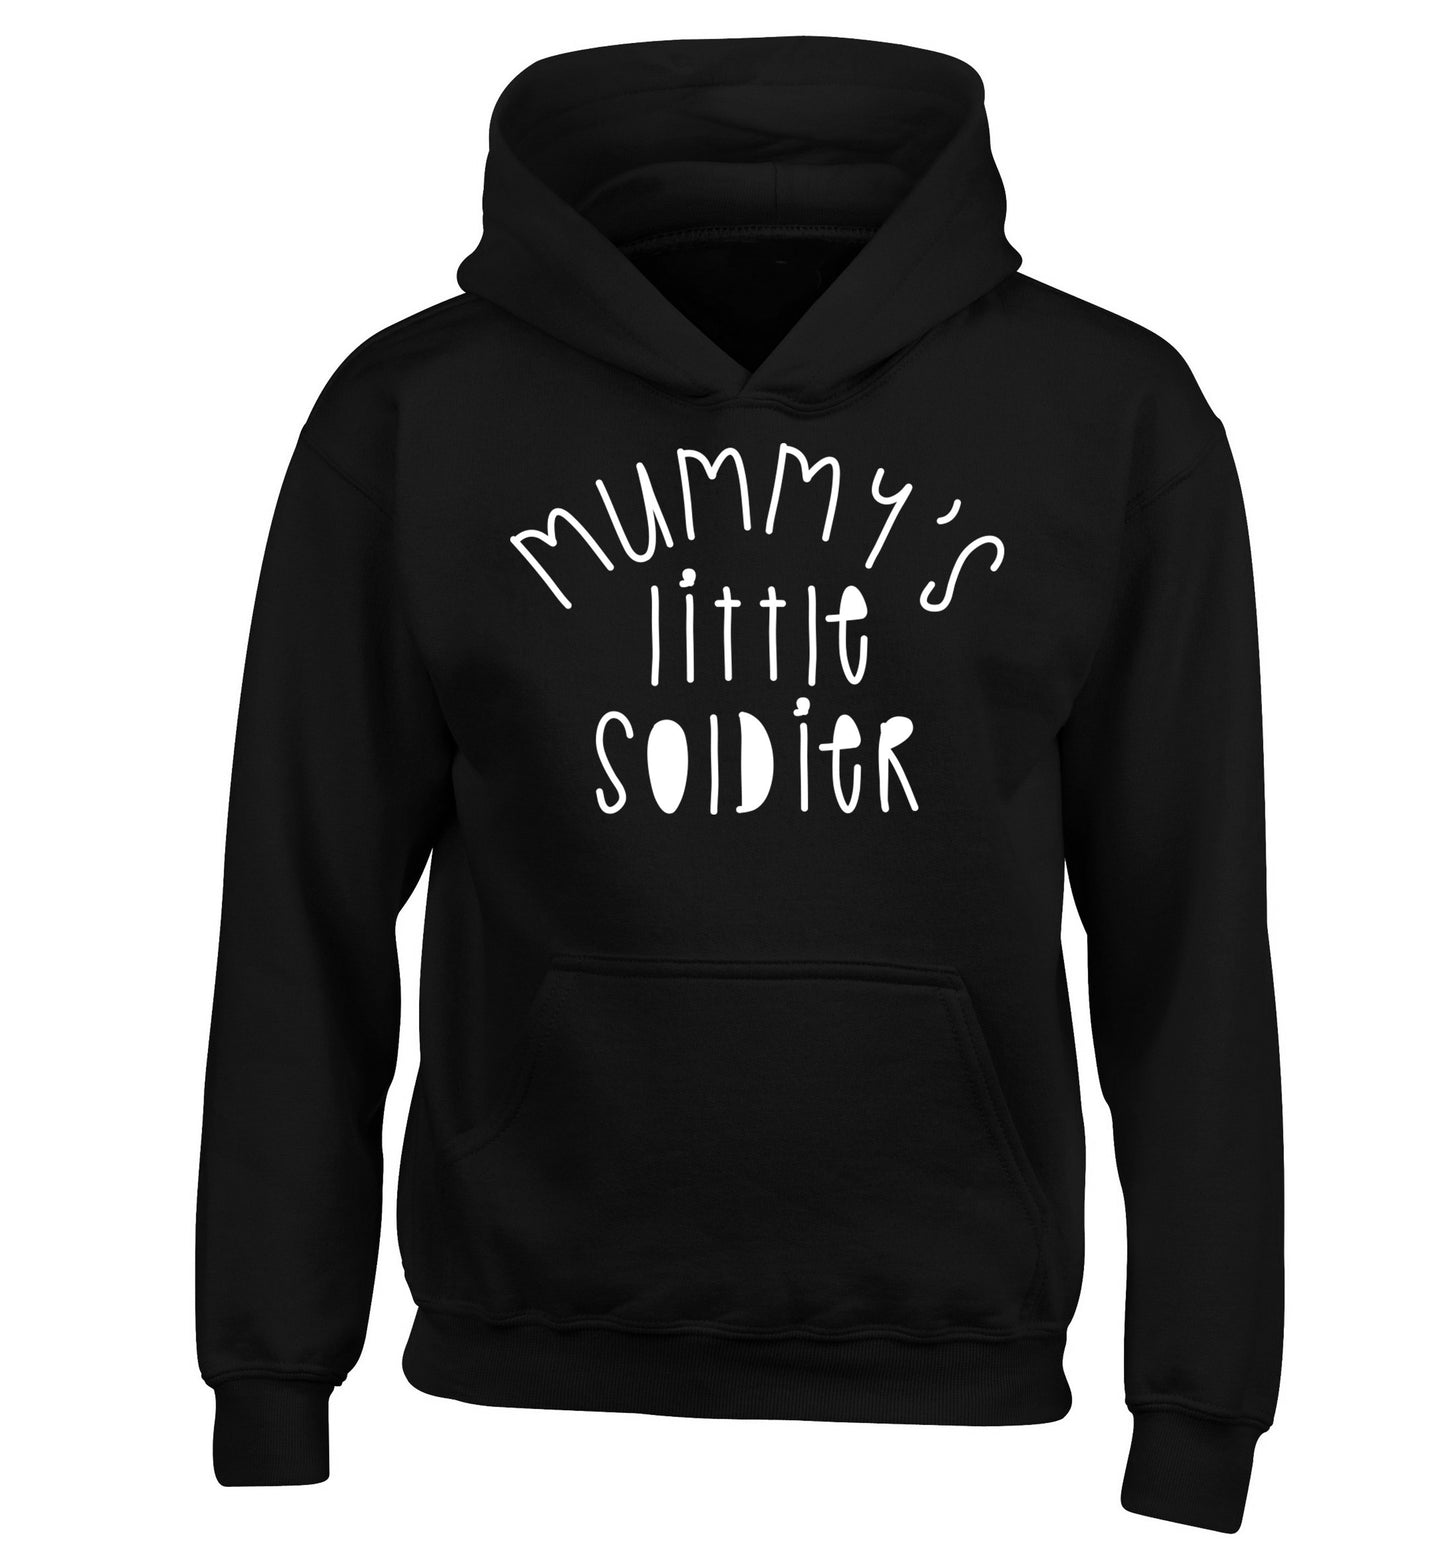 Mummy's little soldier children's black hoodie 12-14 Years